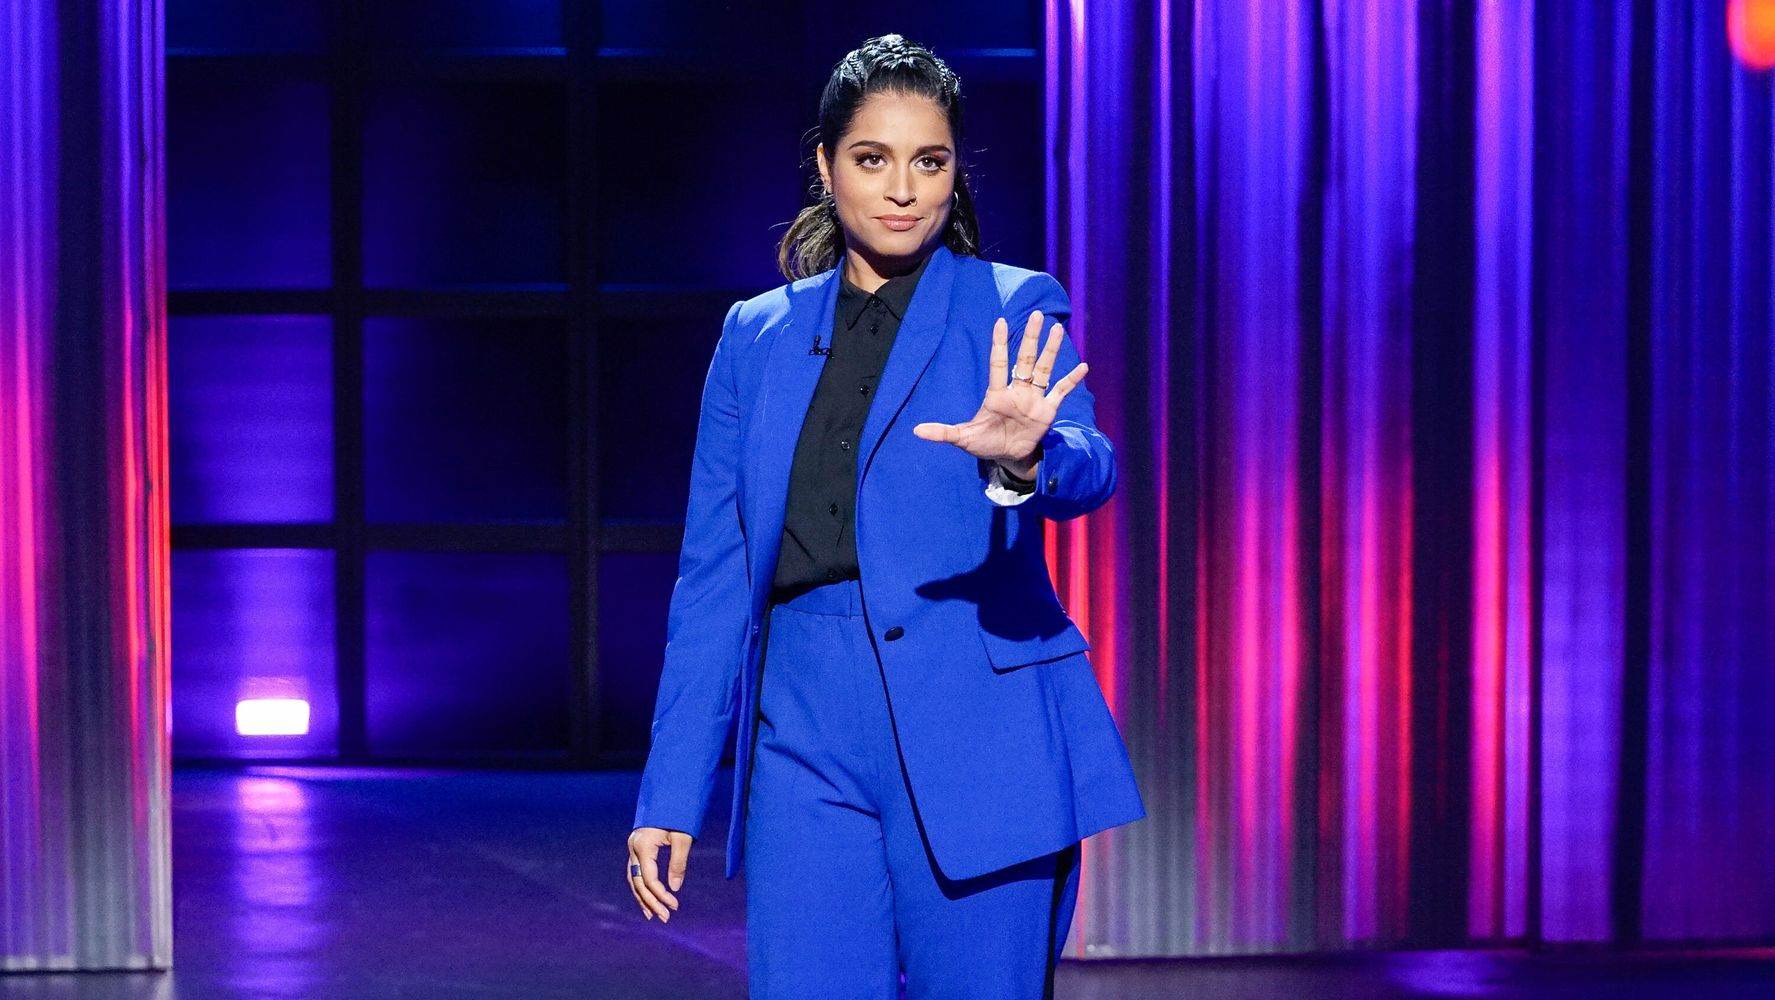 Lilly Singh Talks Bisexual Visibility In Late-Night Monologue